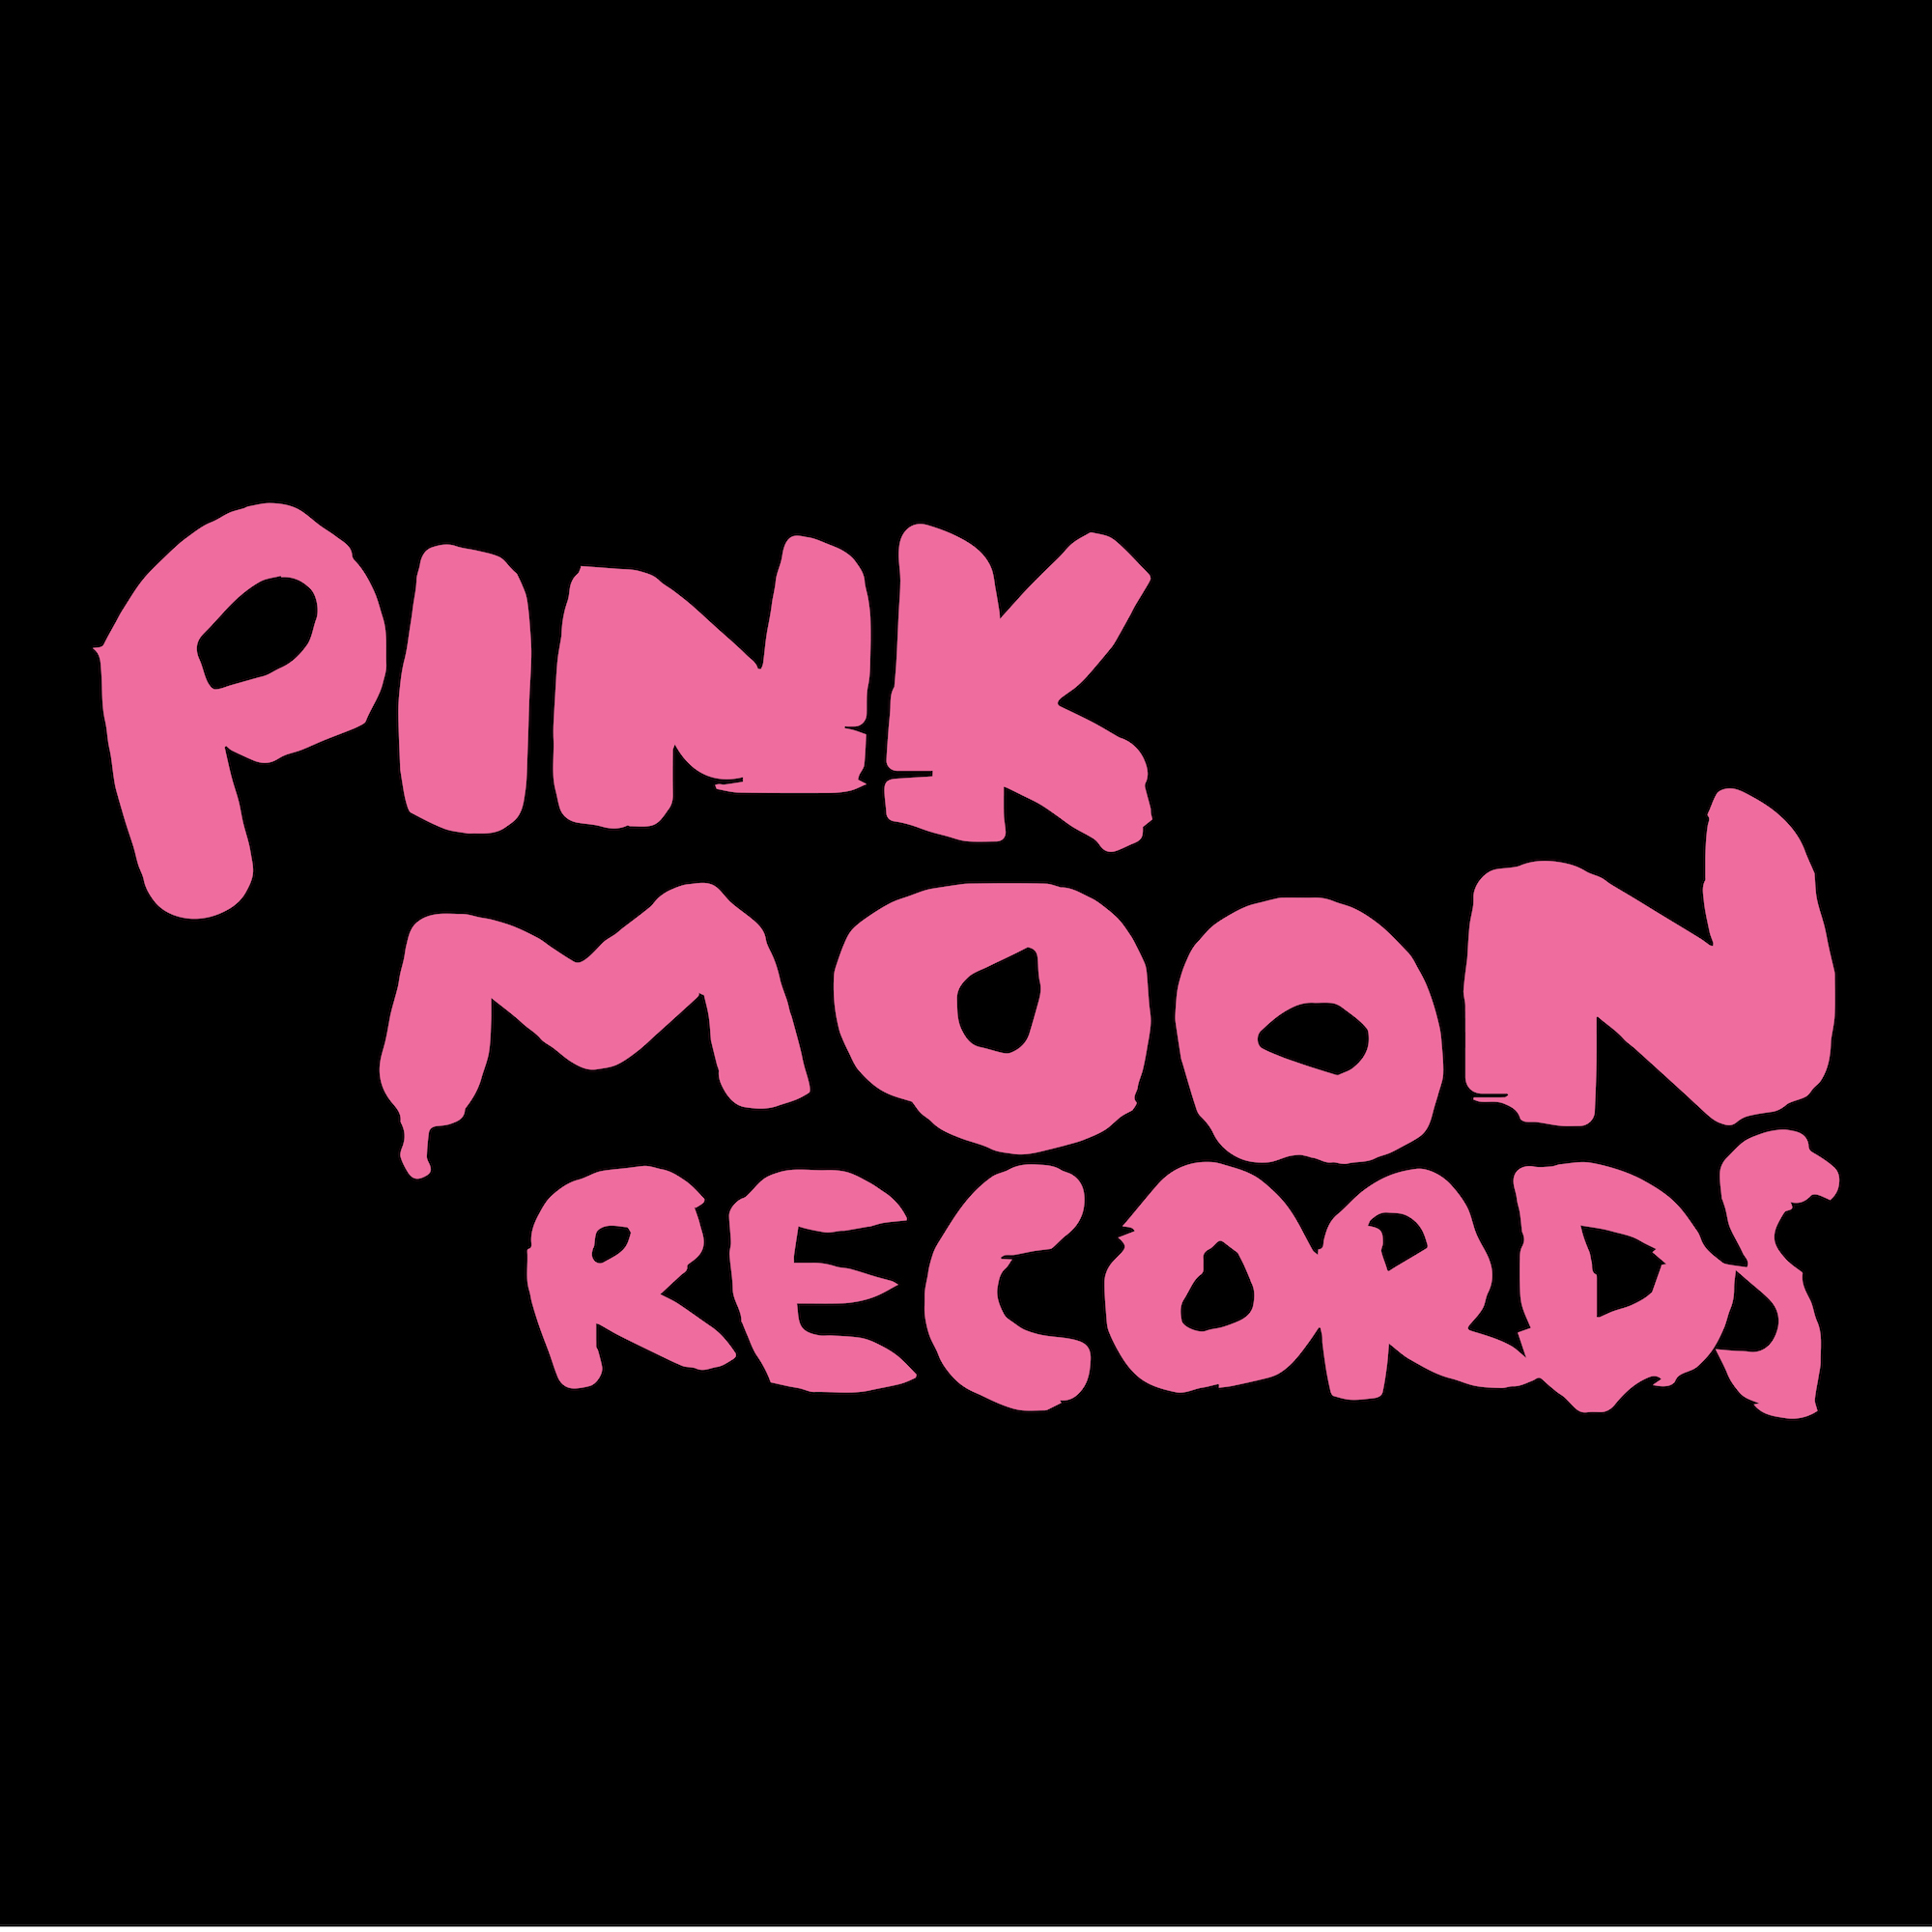 PINK MOON RECORDS